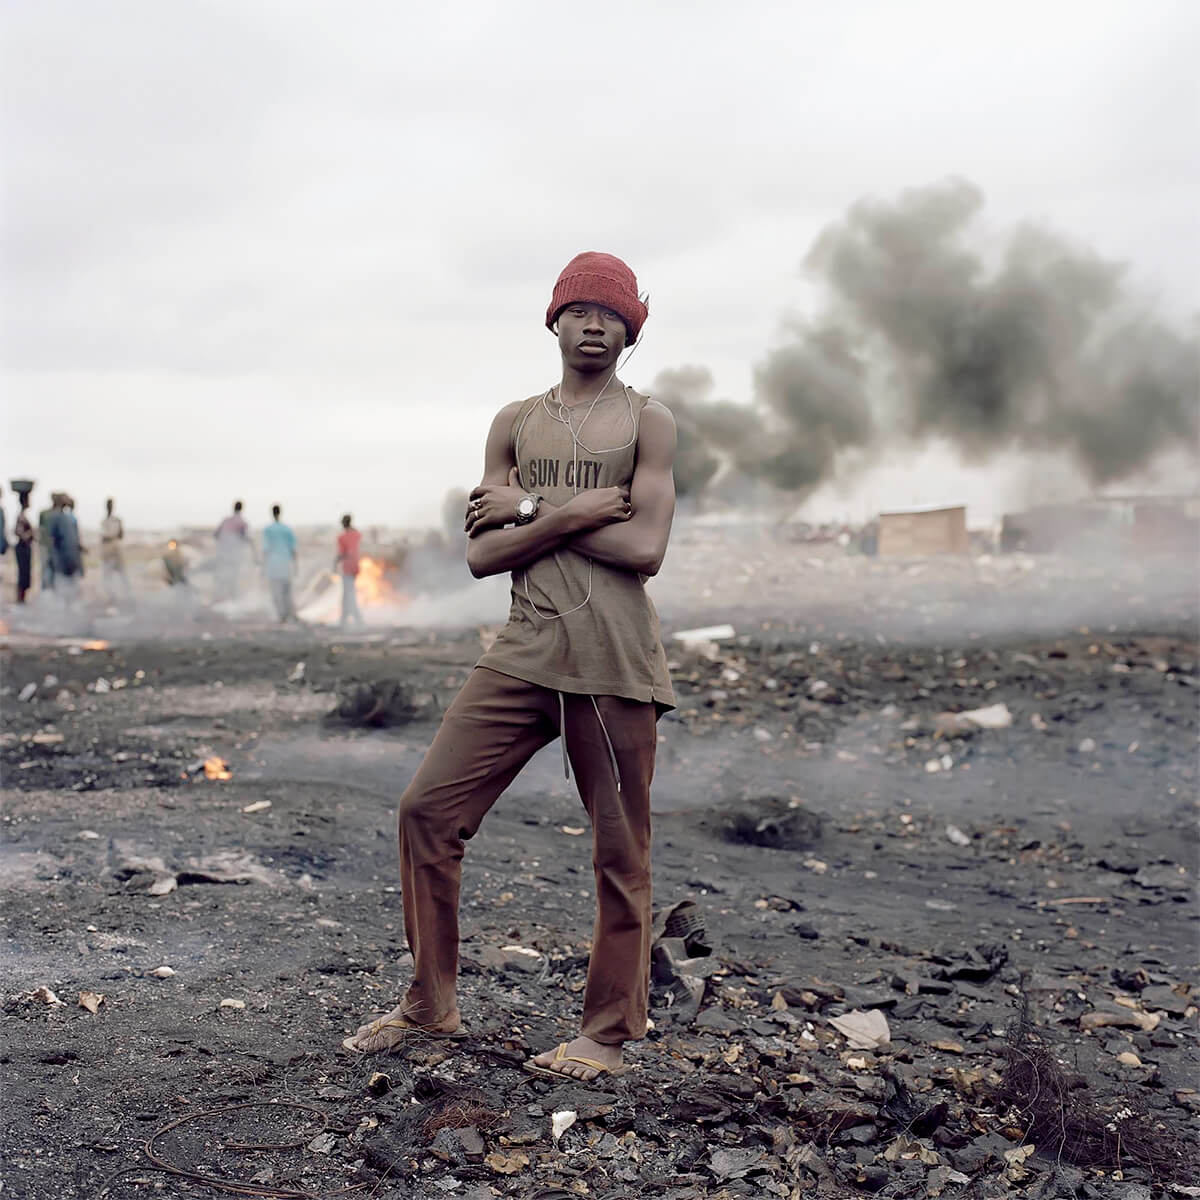 Pieter Hugo - From the series Permanent Error, Yaw Francis, Agbogbloshie Market, Accra, Ghana, 2009 - Digital C-Print ©Pieter Hugo, Courtesy Yossi Milo Gallery